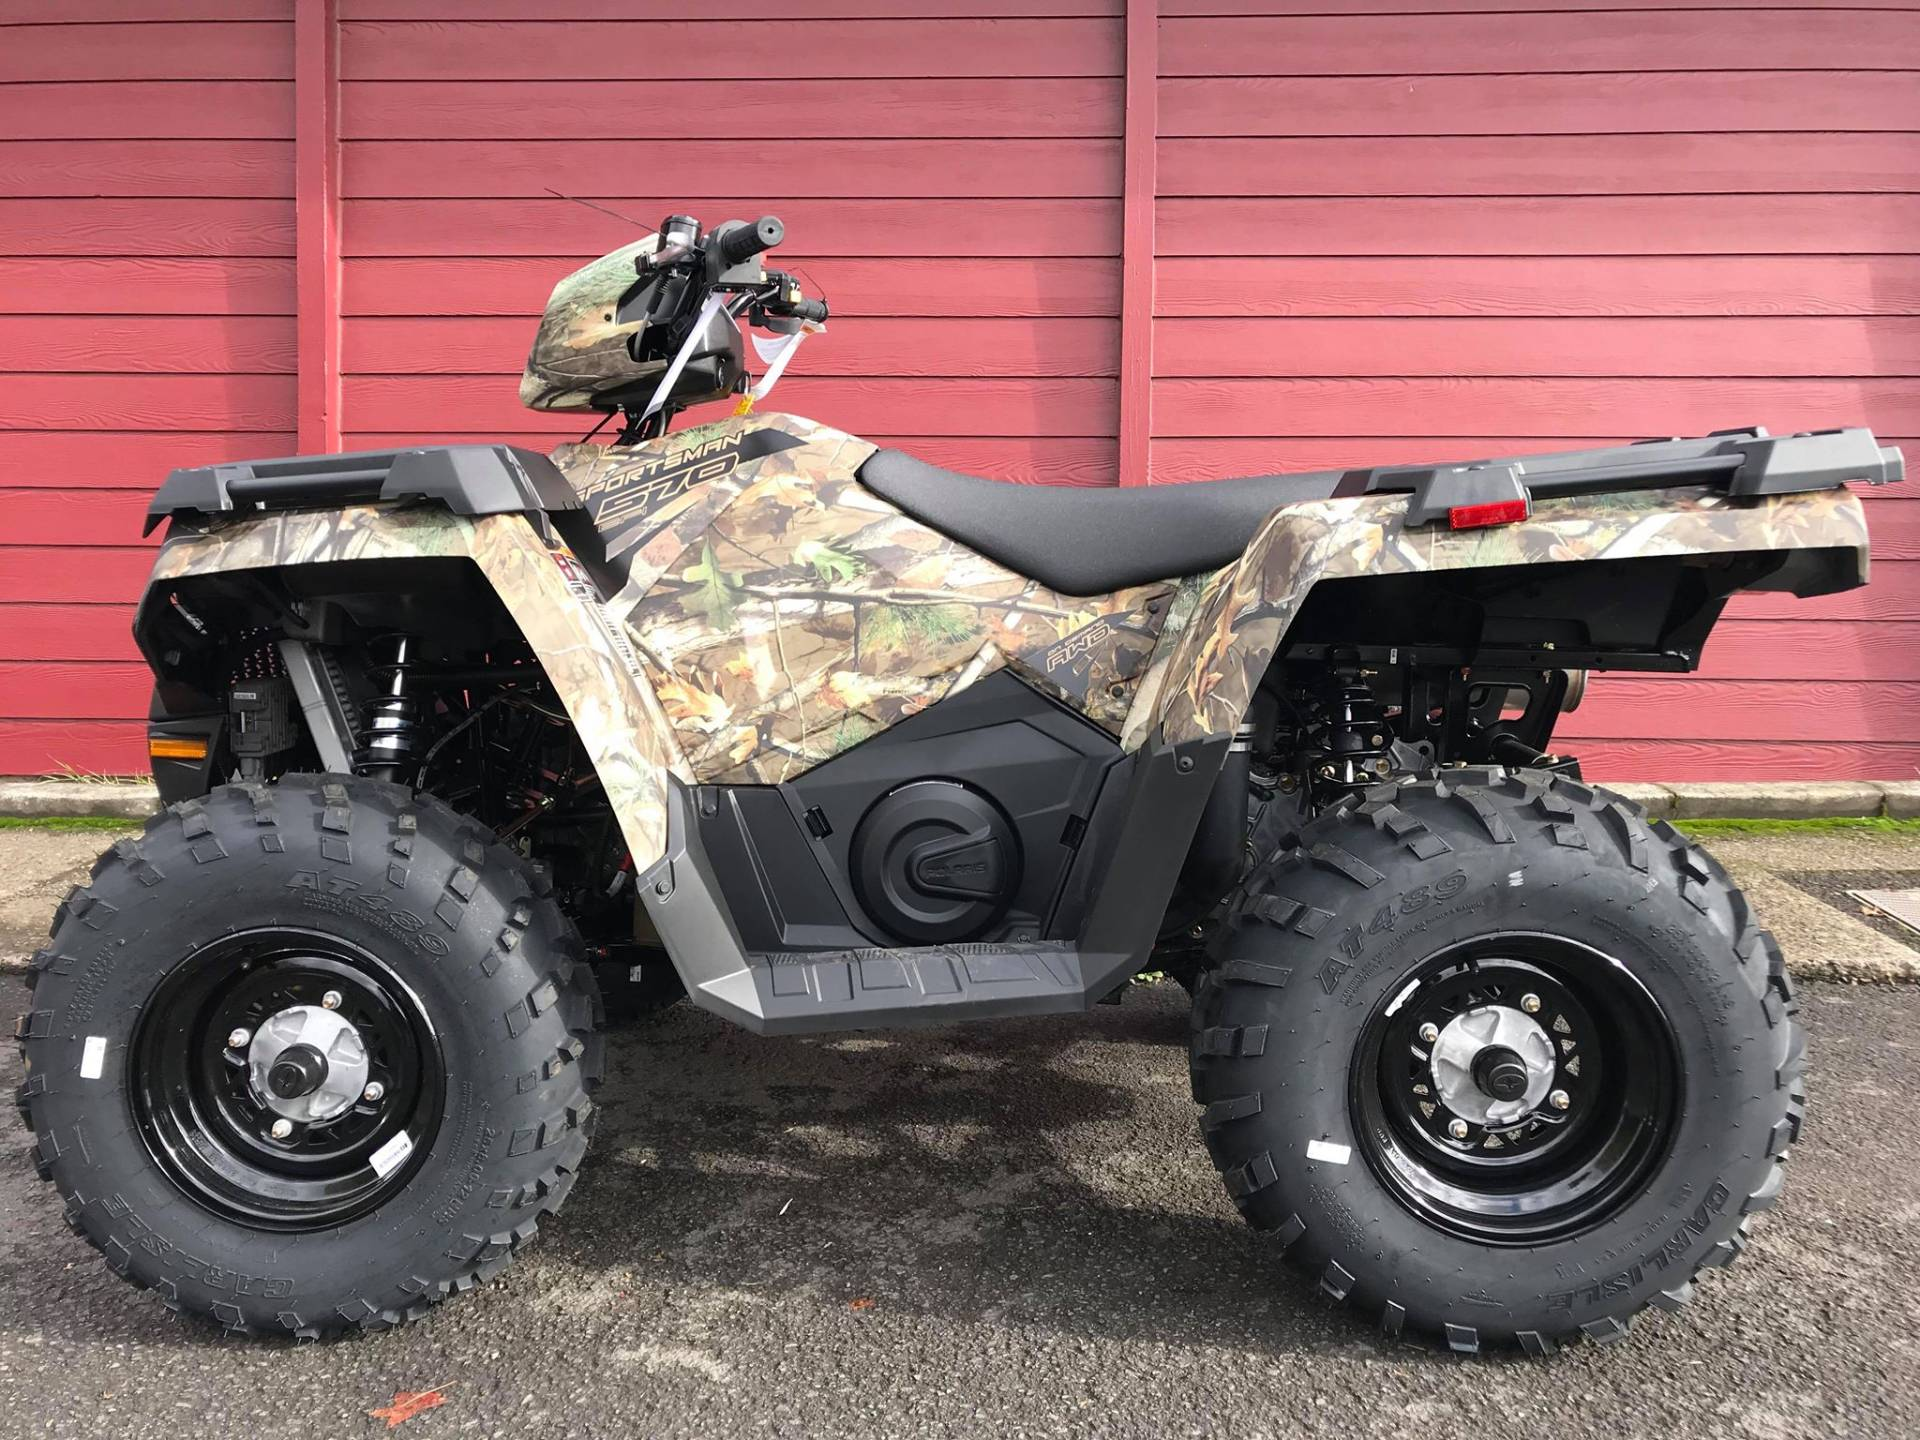 2019 Polaris Sportsman 570 Camo in Tualatin, Oregon - Photo 1